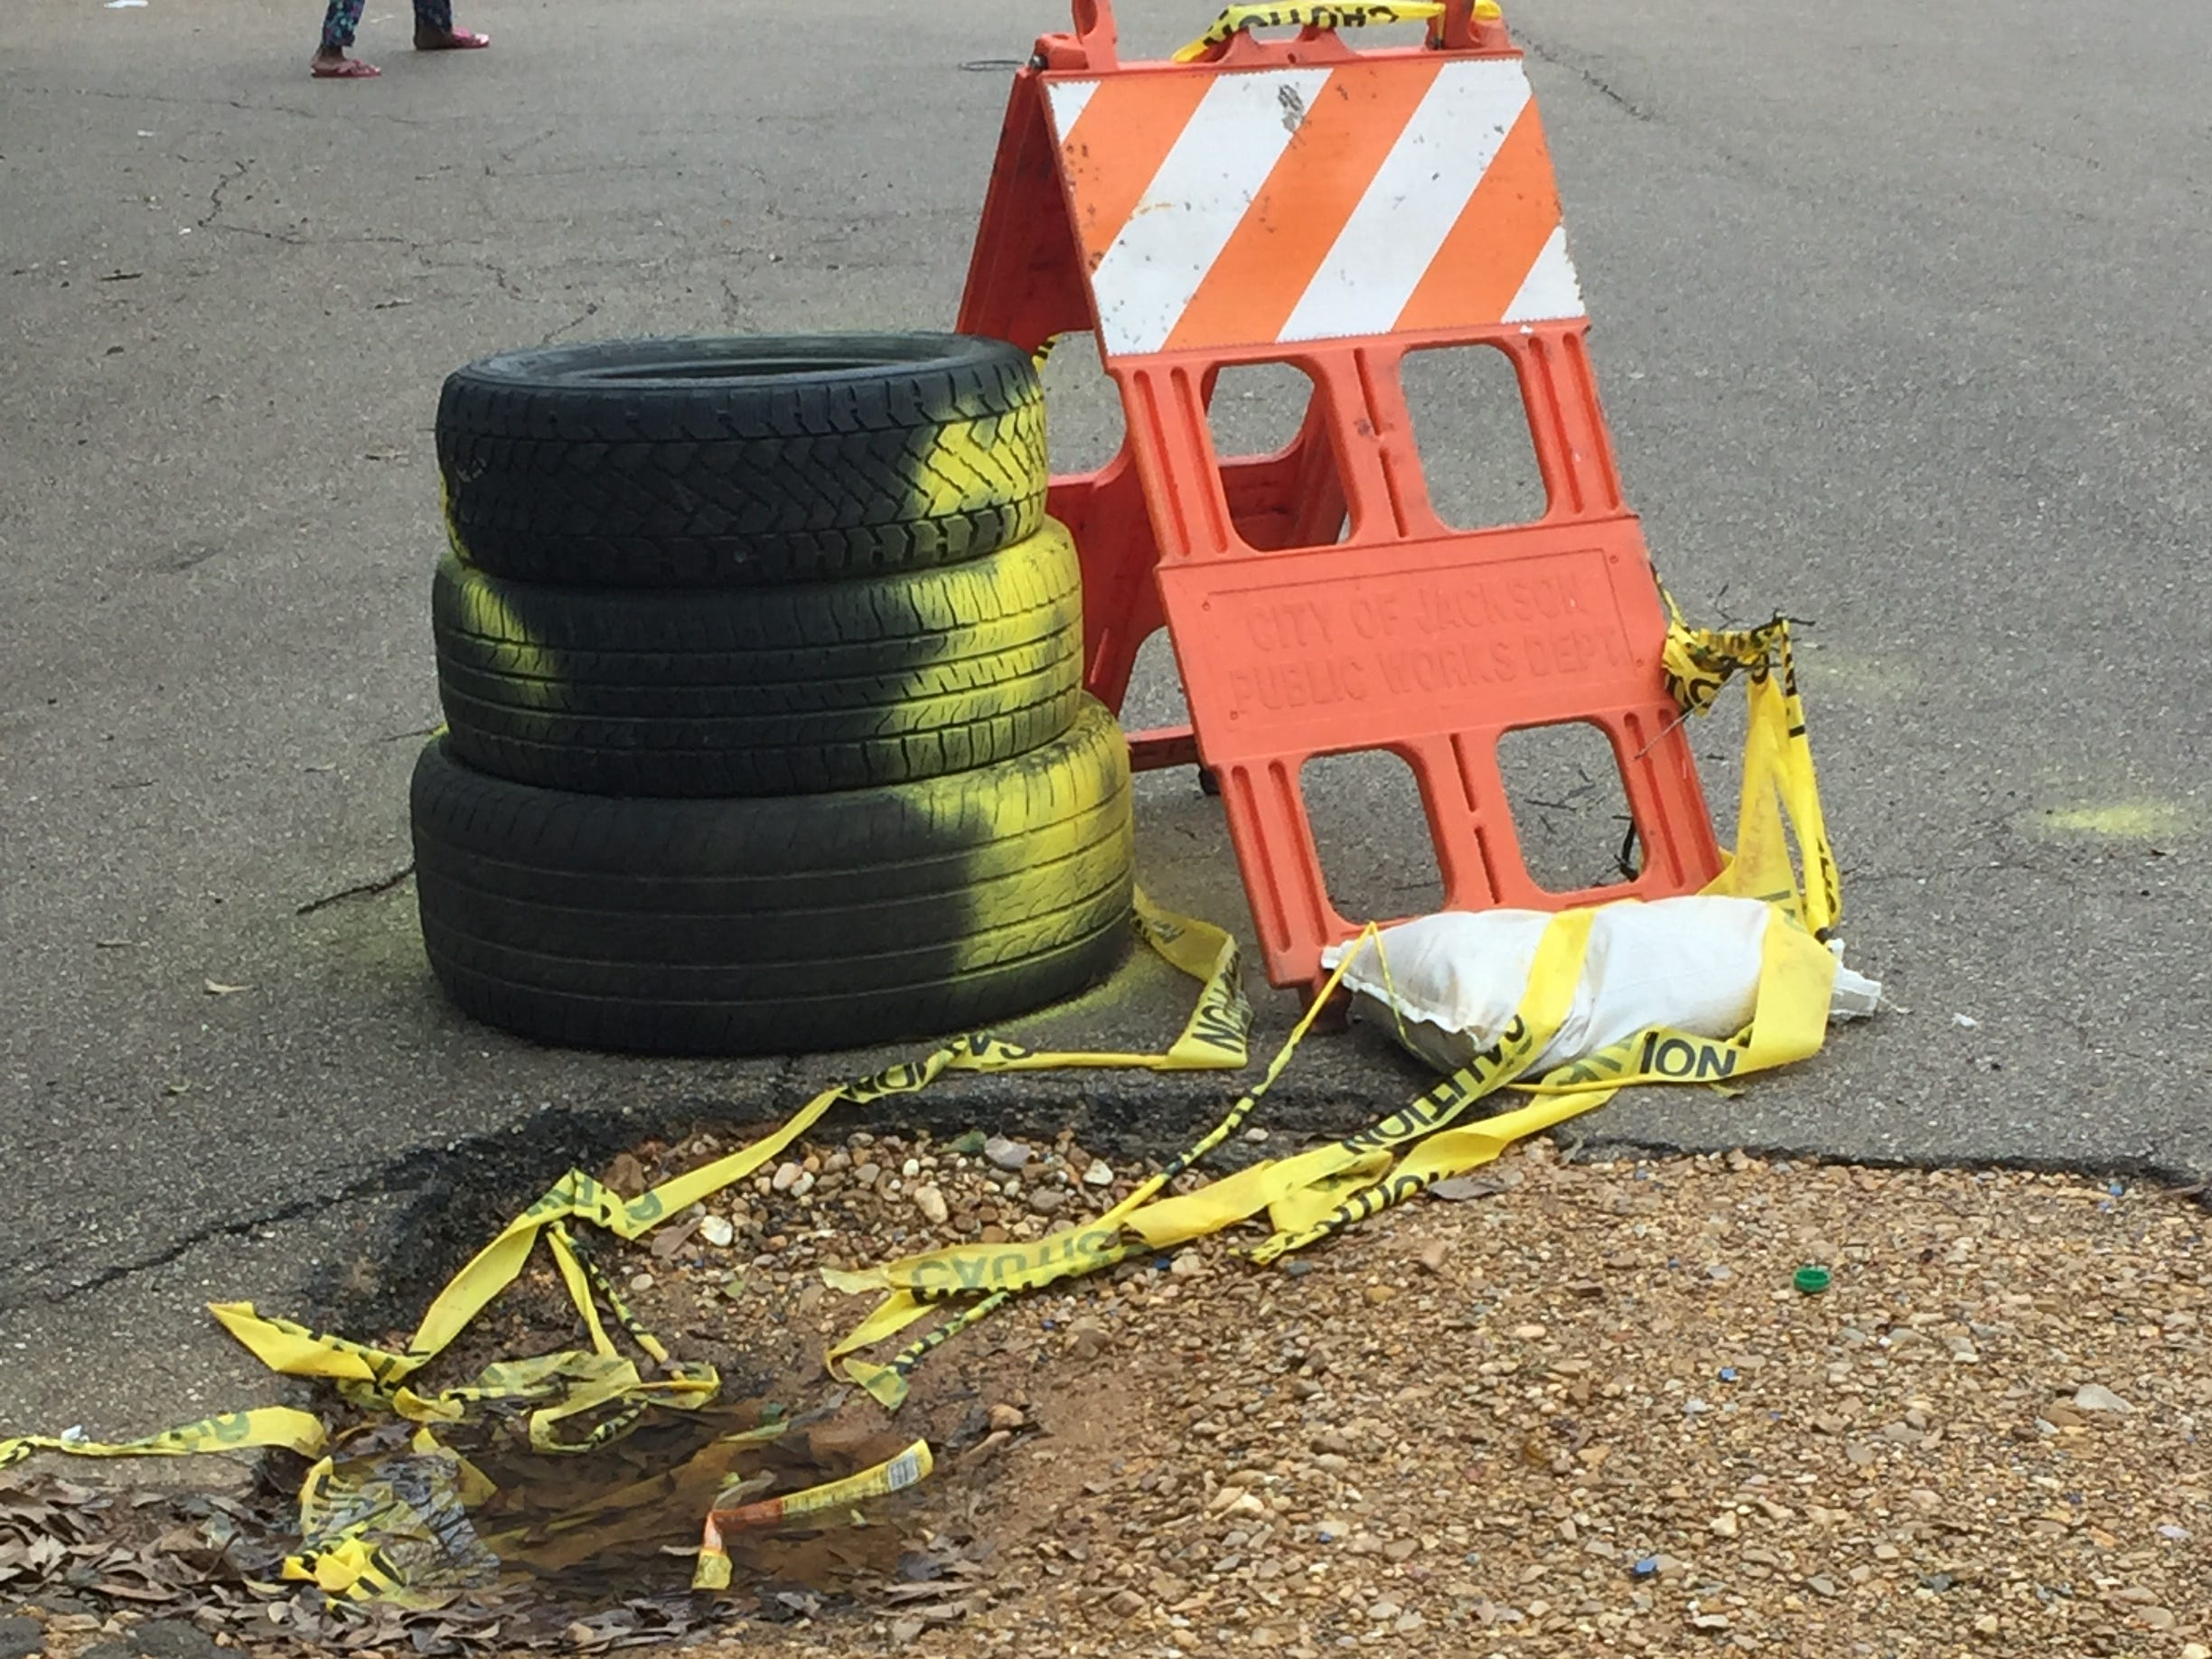 Tires painted by residents, along with a city barricade, mark pothole problems on Mitchell Street in Jackson's Fondren neighborhood on Saturday, March 2, 2019.